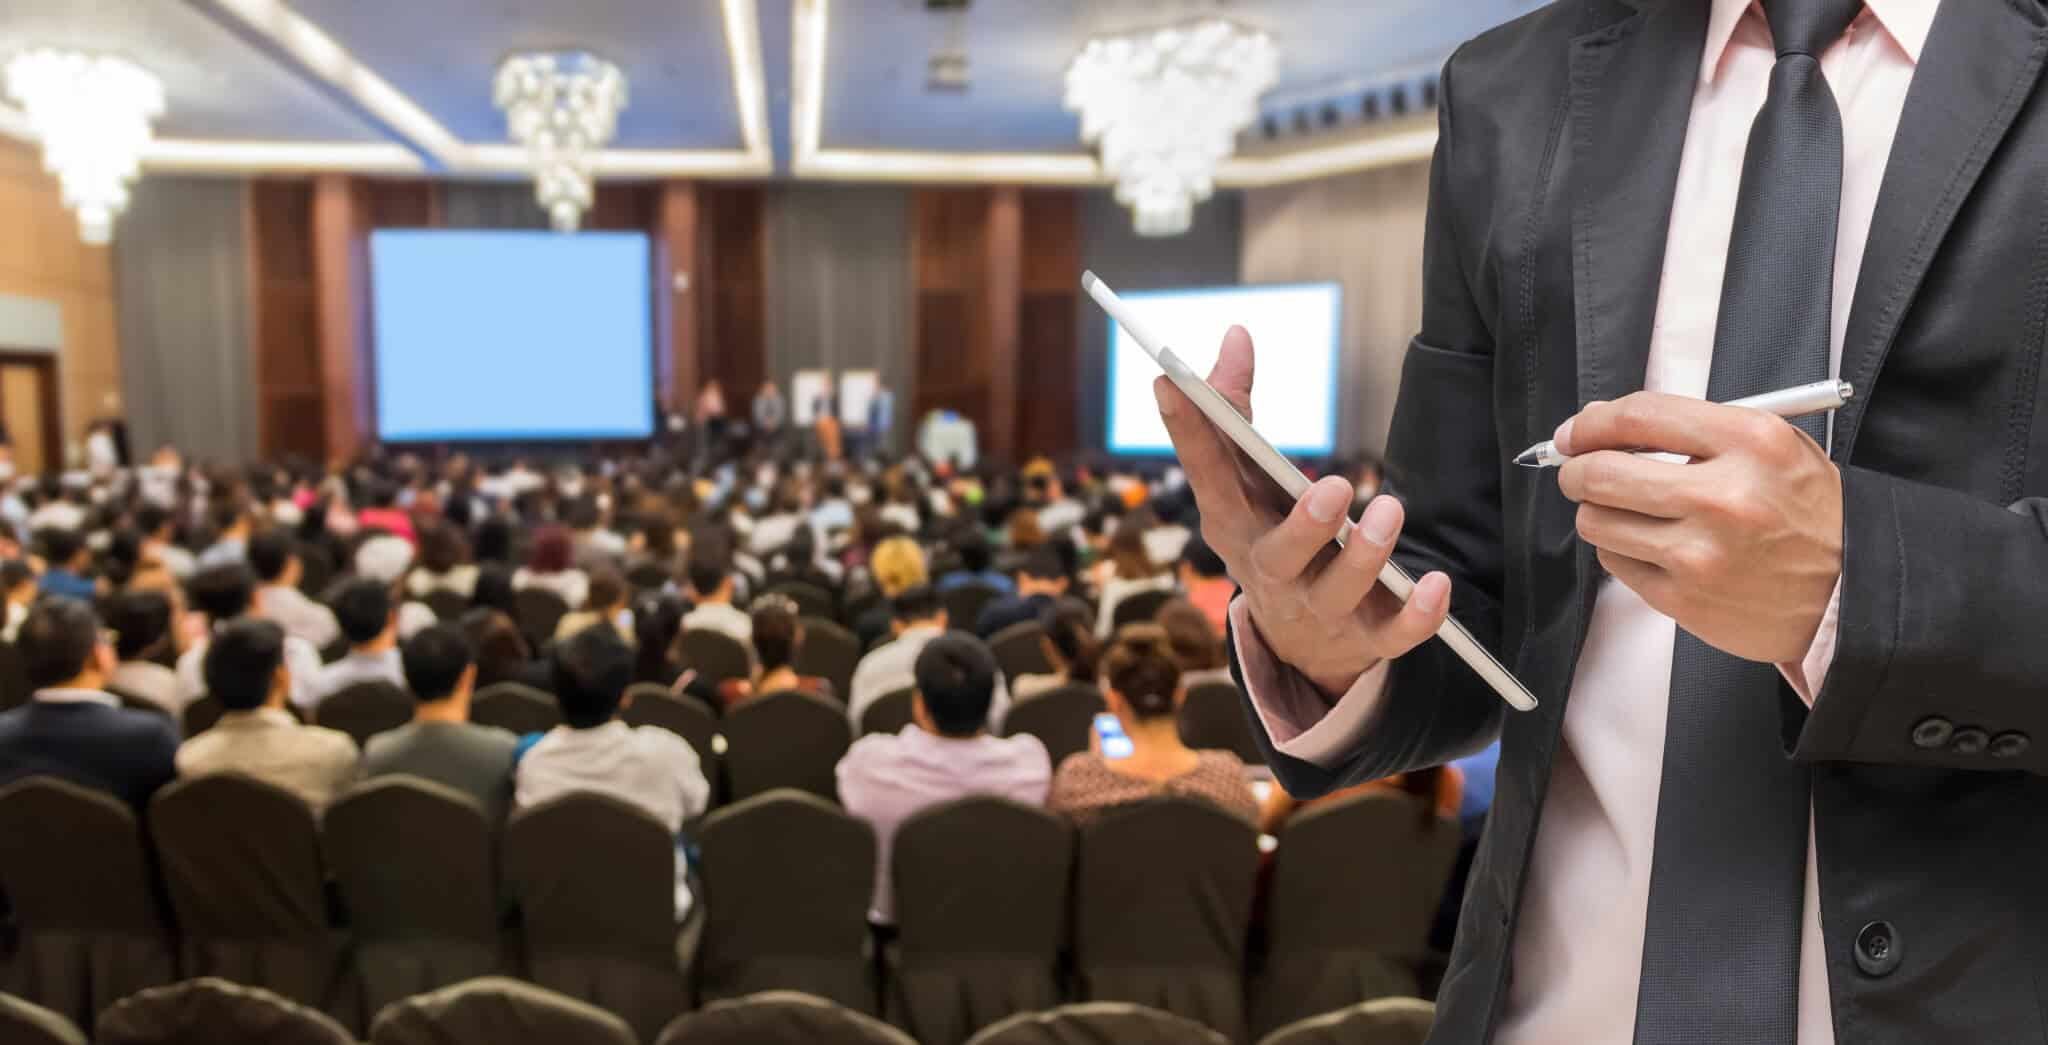 Public Speaking Training 101: Content and Preparation Before Your